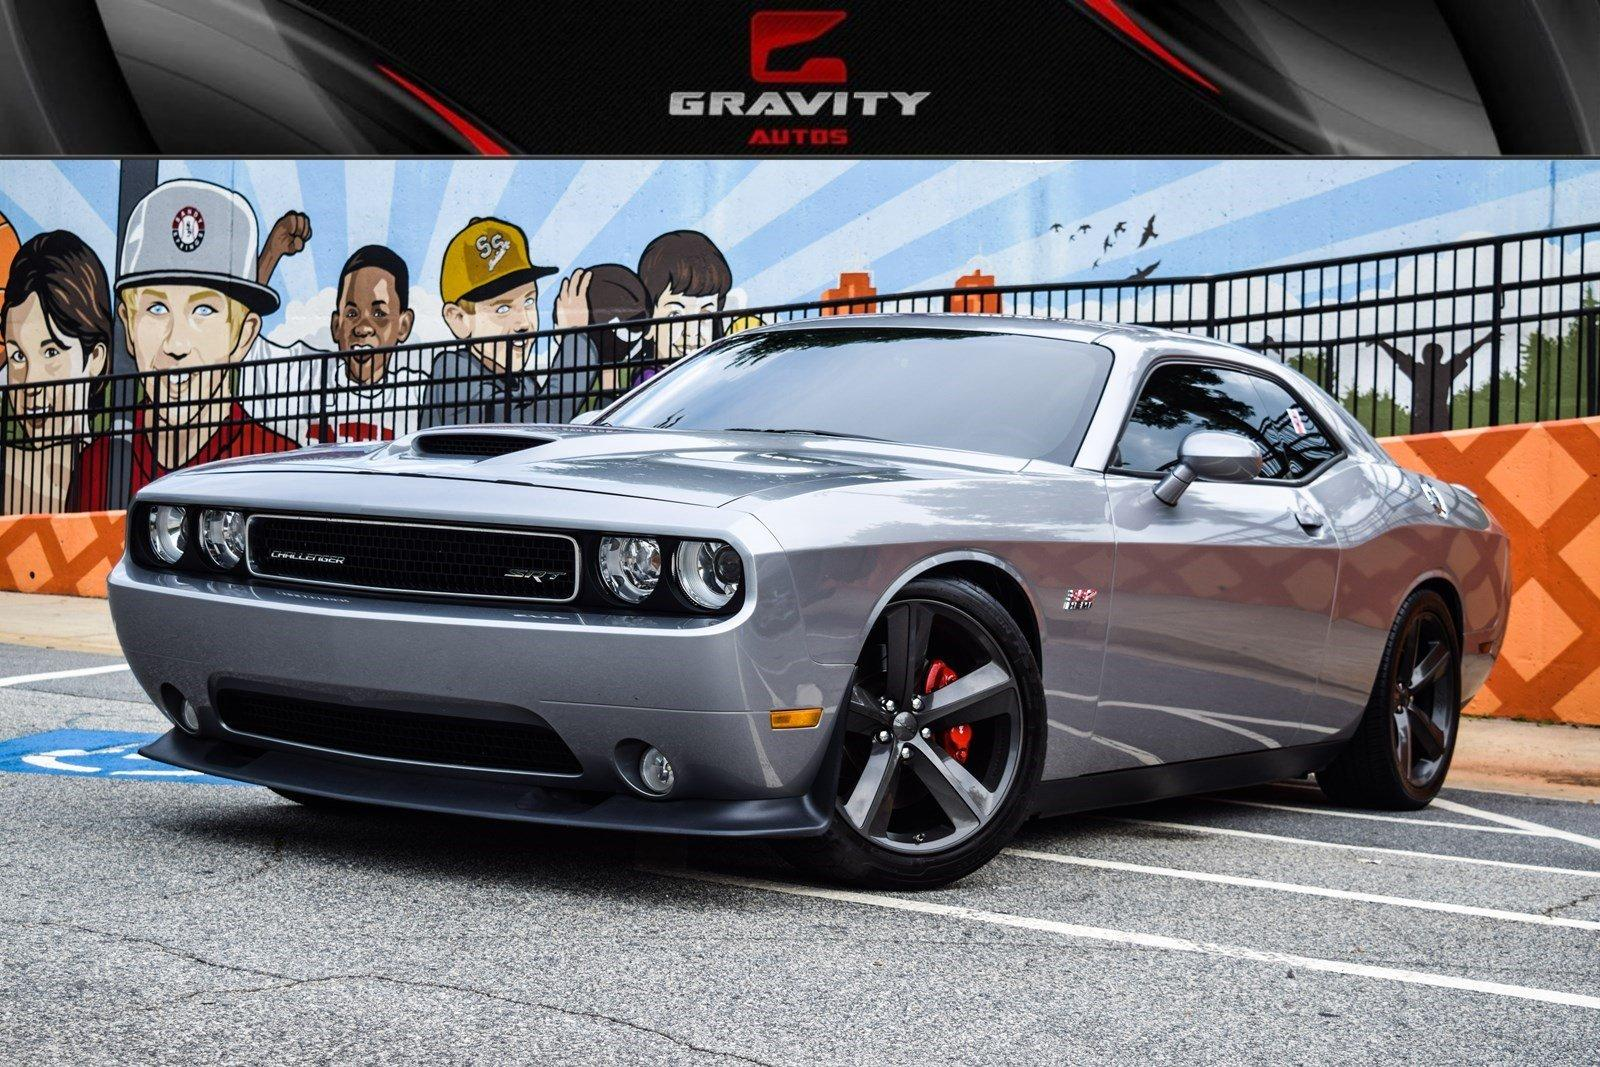 2011 Dodge Challenger Srt8 Stock 526620 For Sale Near Sandy Springs Ga Ga Dodge Dealer